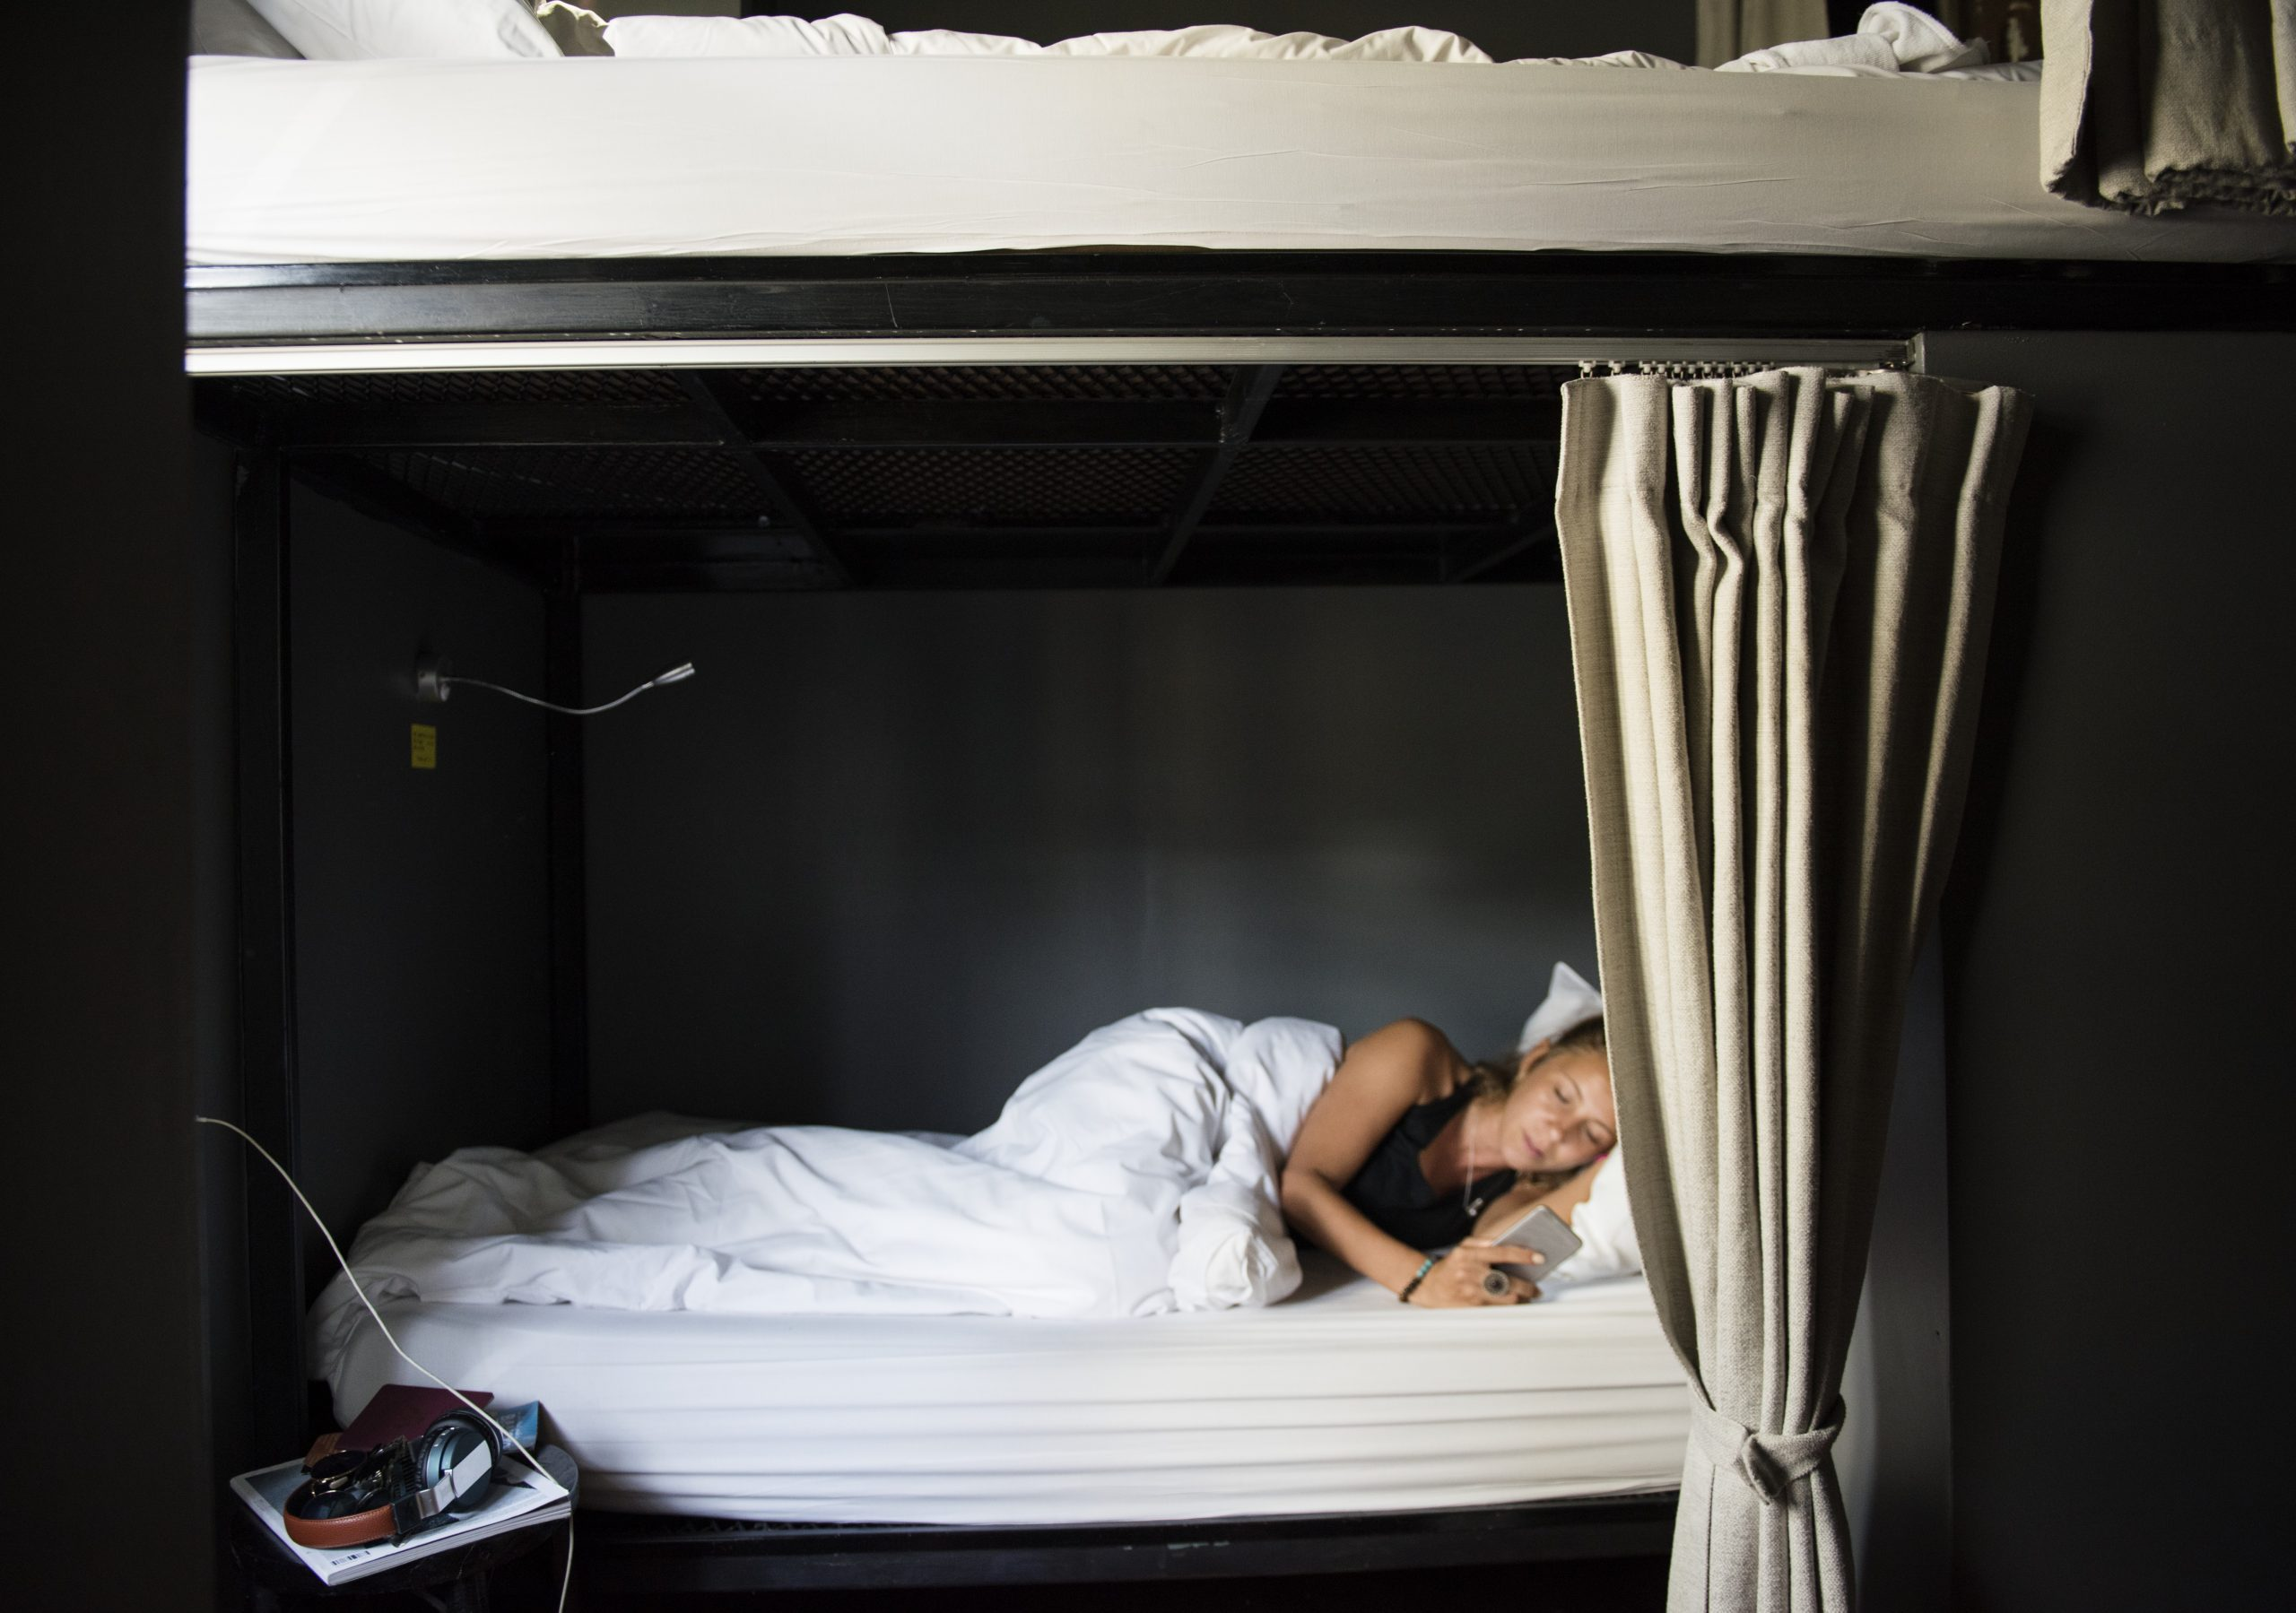 woman lying on hostel bed using mobile phone